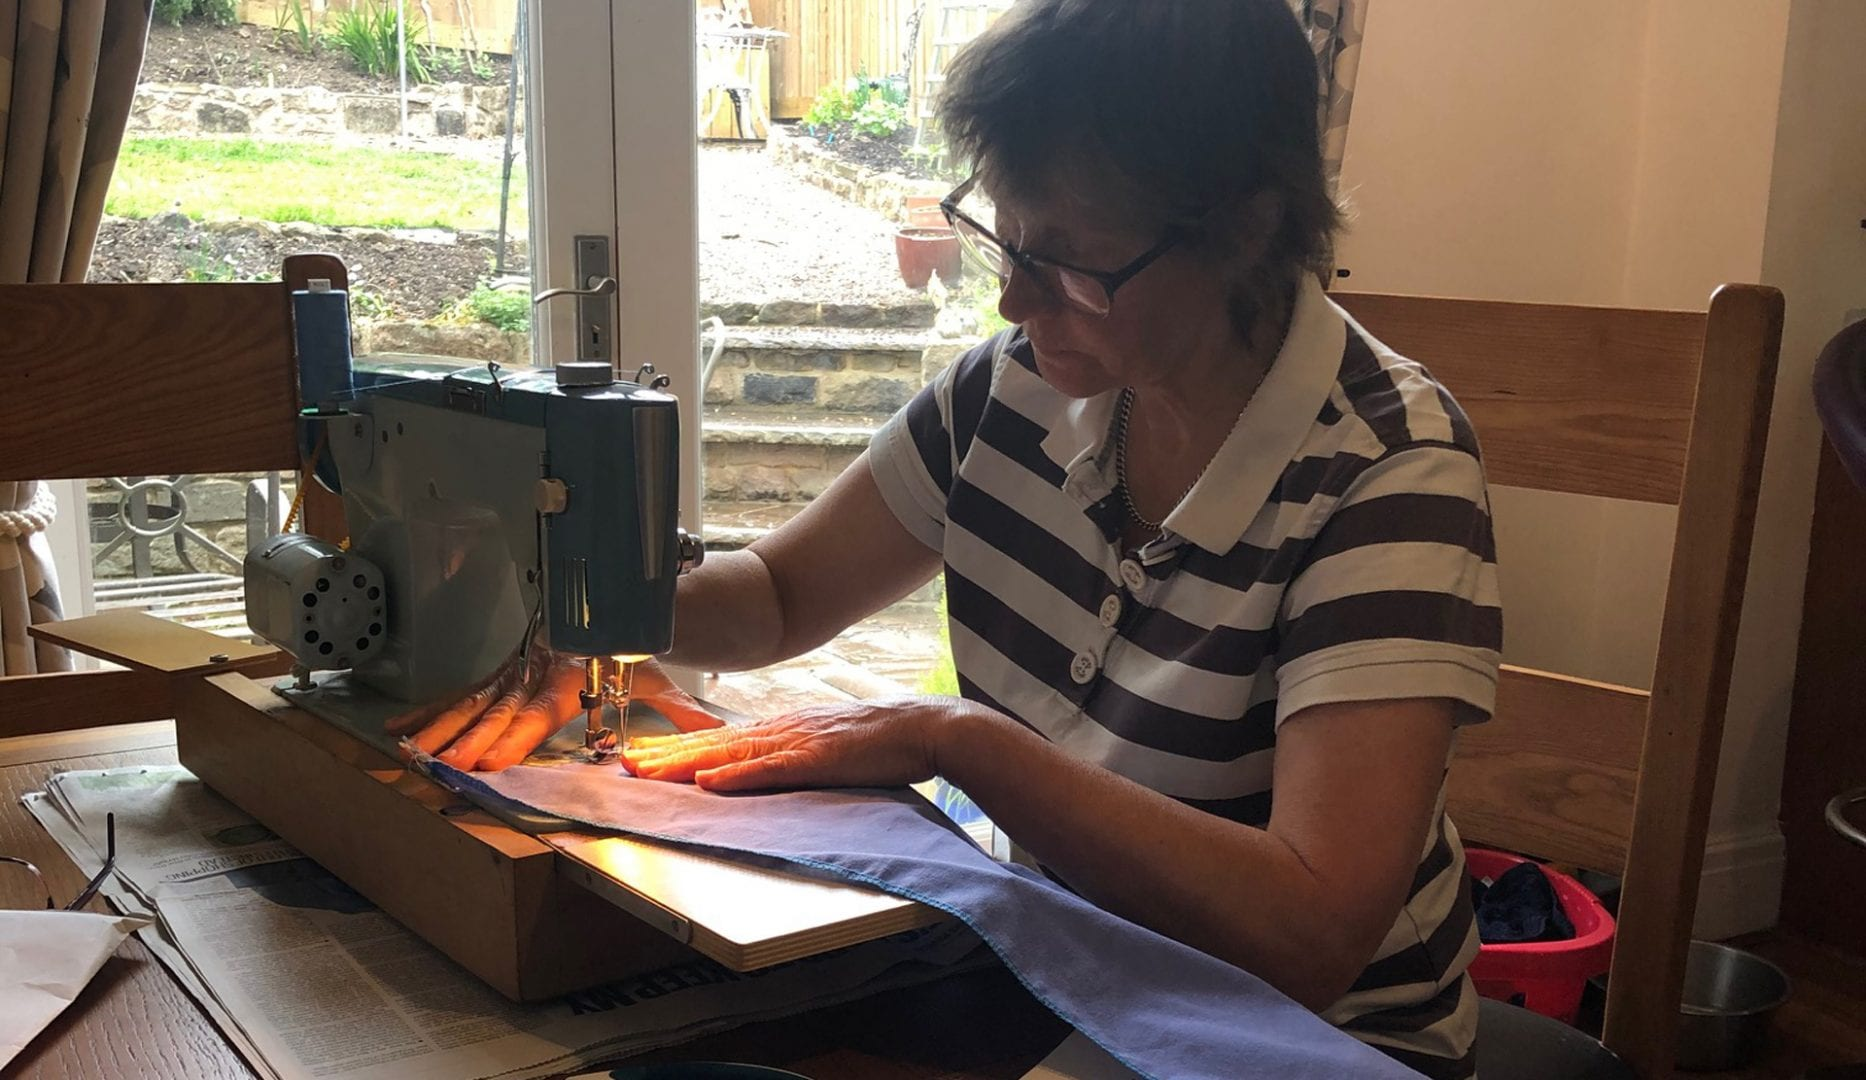 volunteer ferlouged staff from independent hostels UK sewing scrubs on a sewing machine